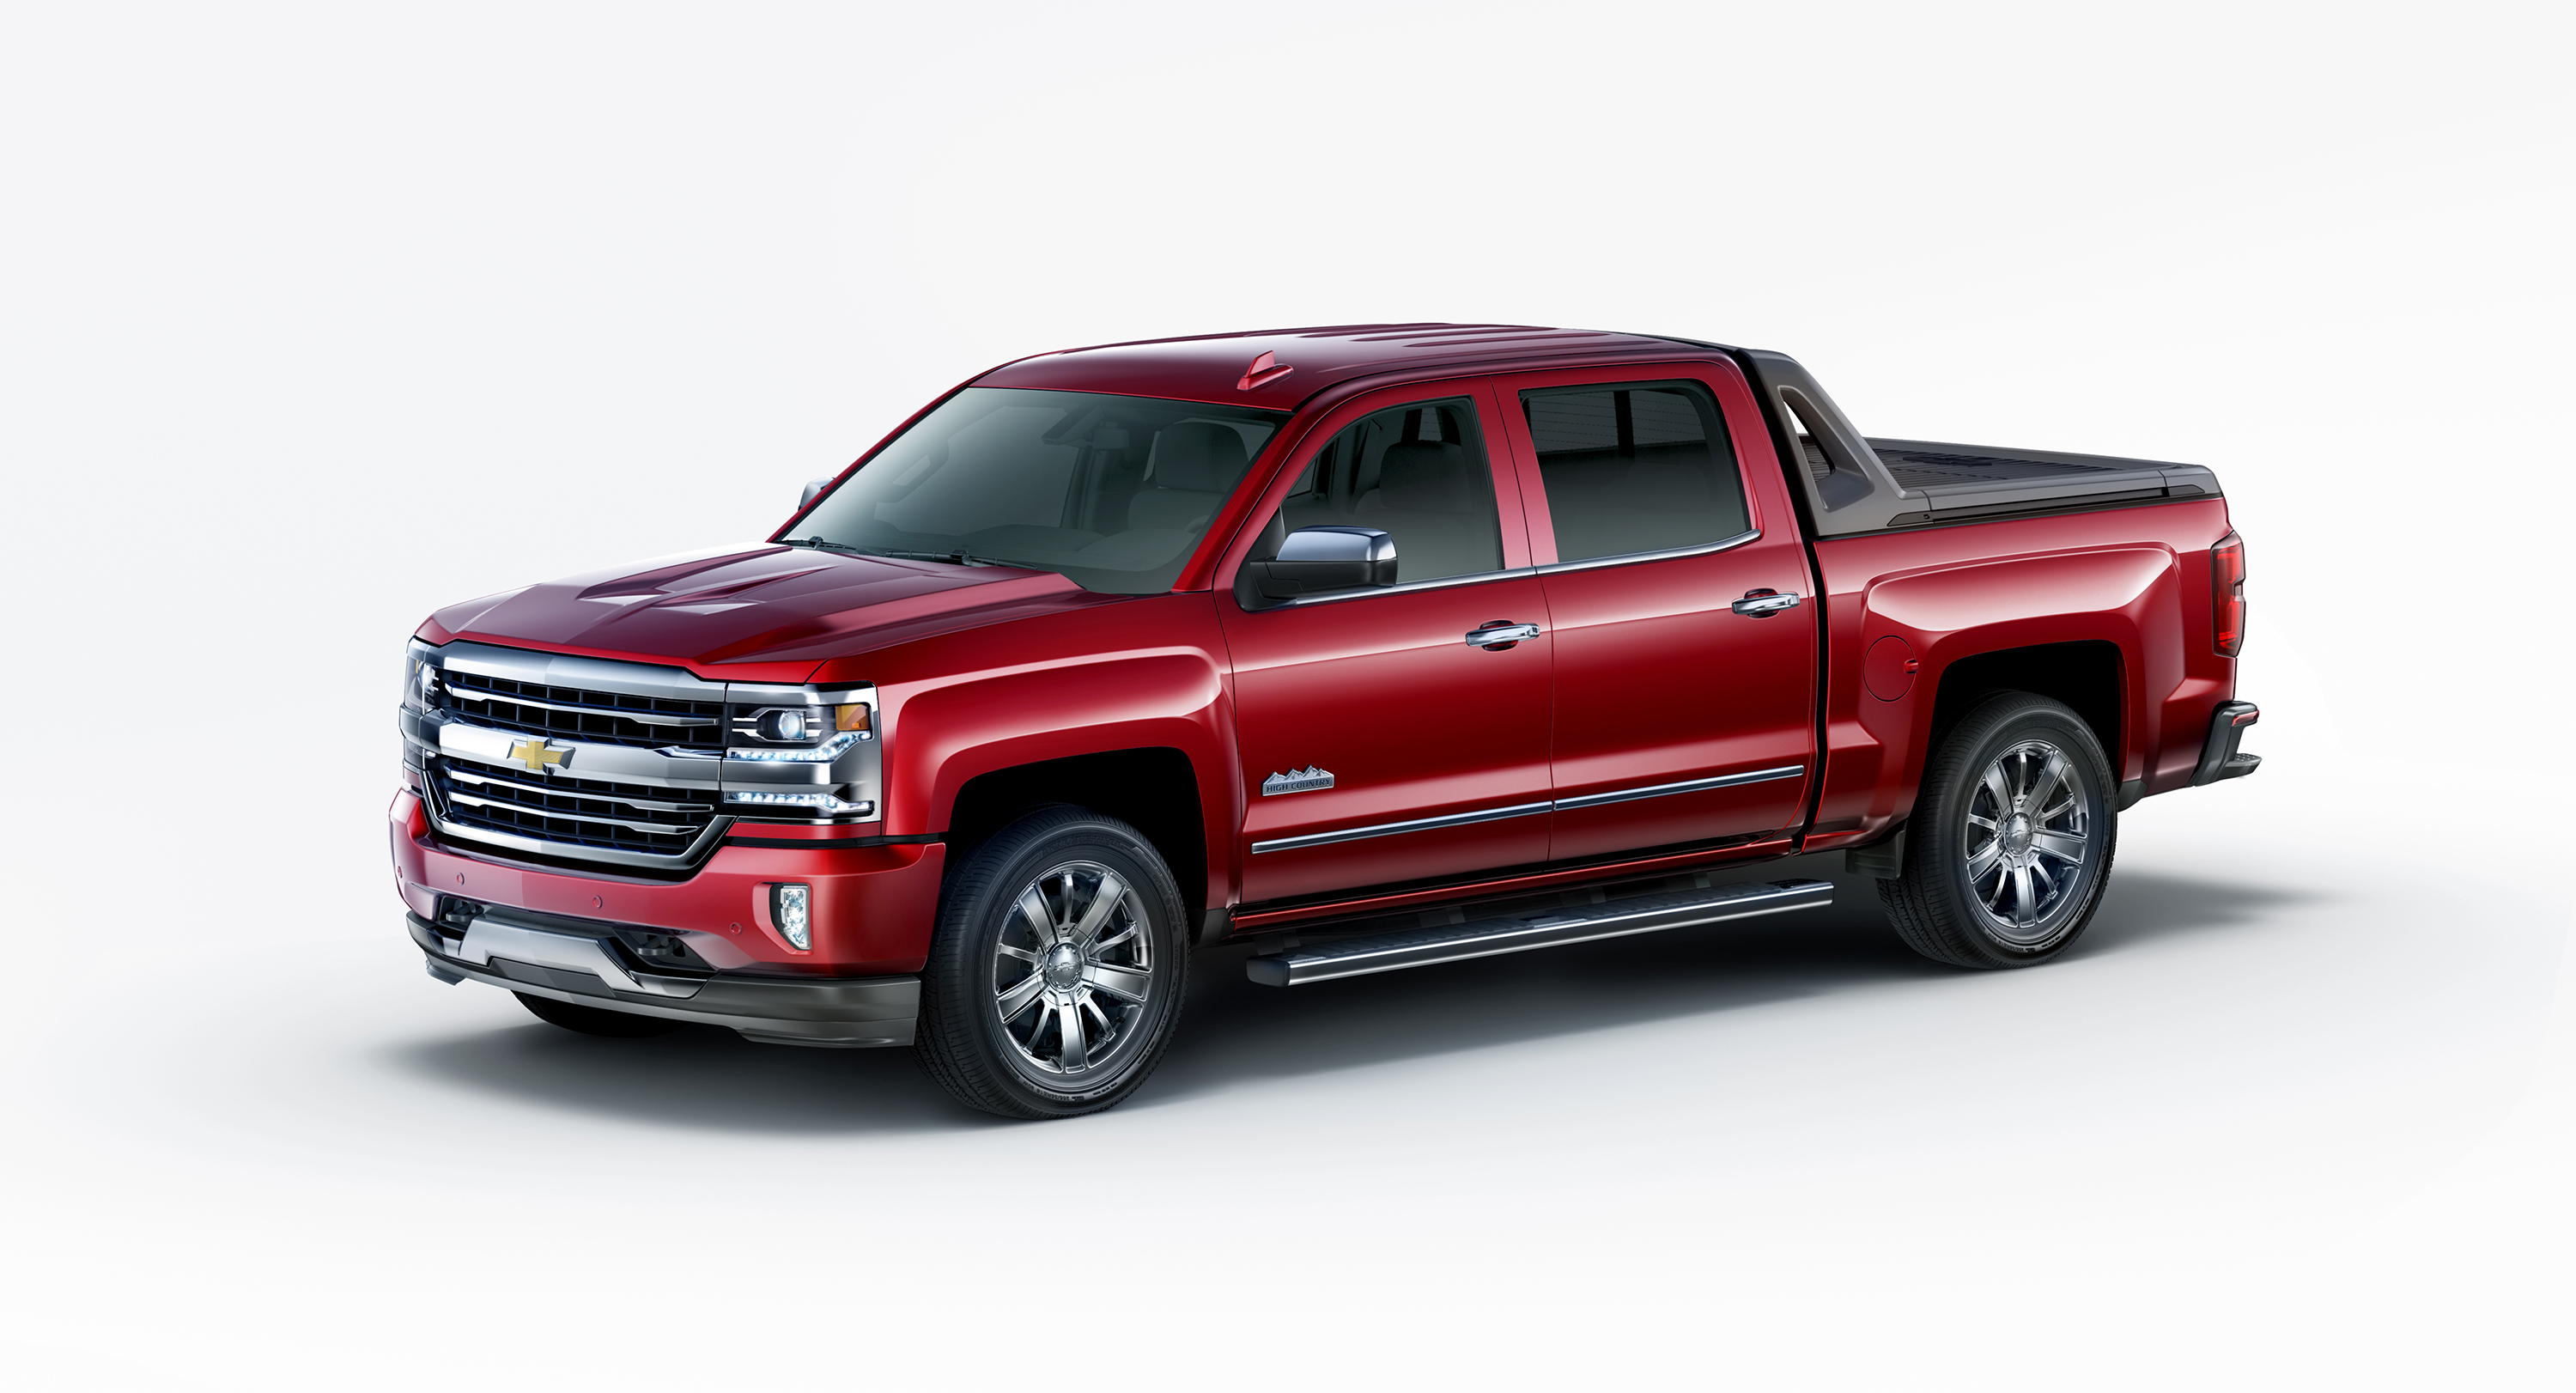 Silverado High Desert >> Chevrolet Silverado High Desert Offers Refined Utility